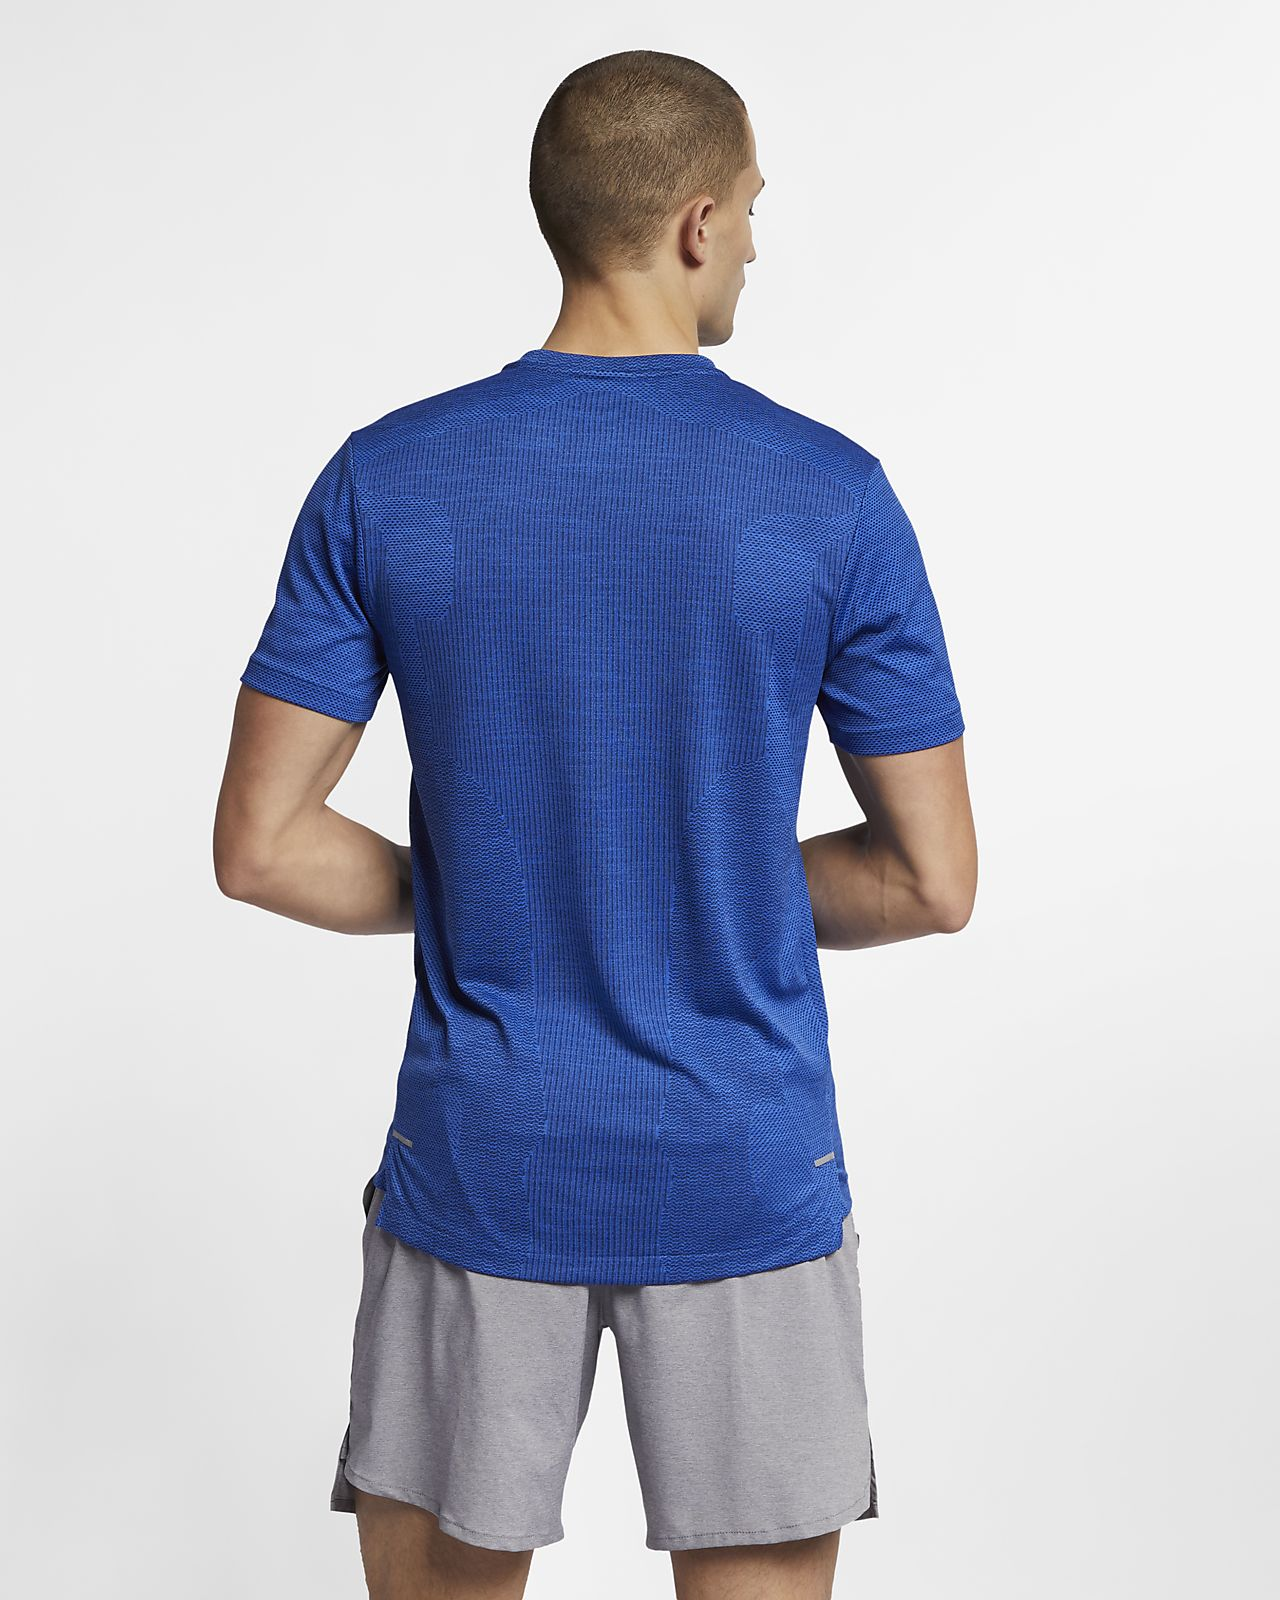 a8e73d171 Nike TechKnit Ultra Men's Short-Sleeve Running Top. Nike.com